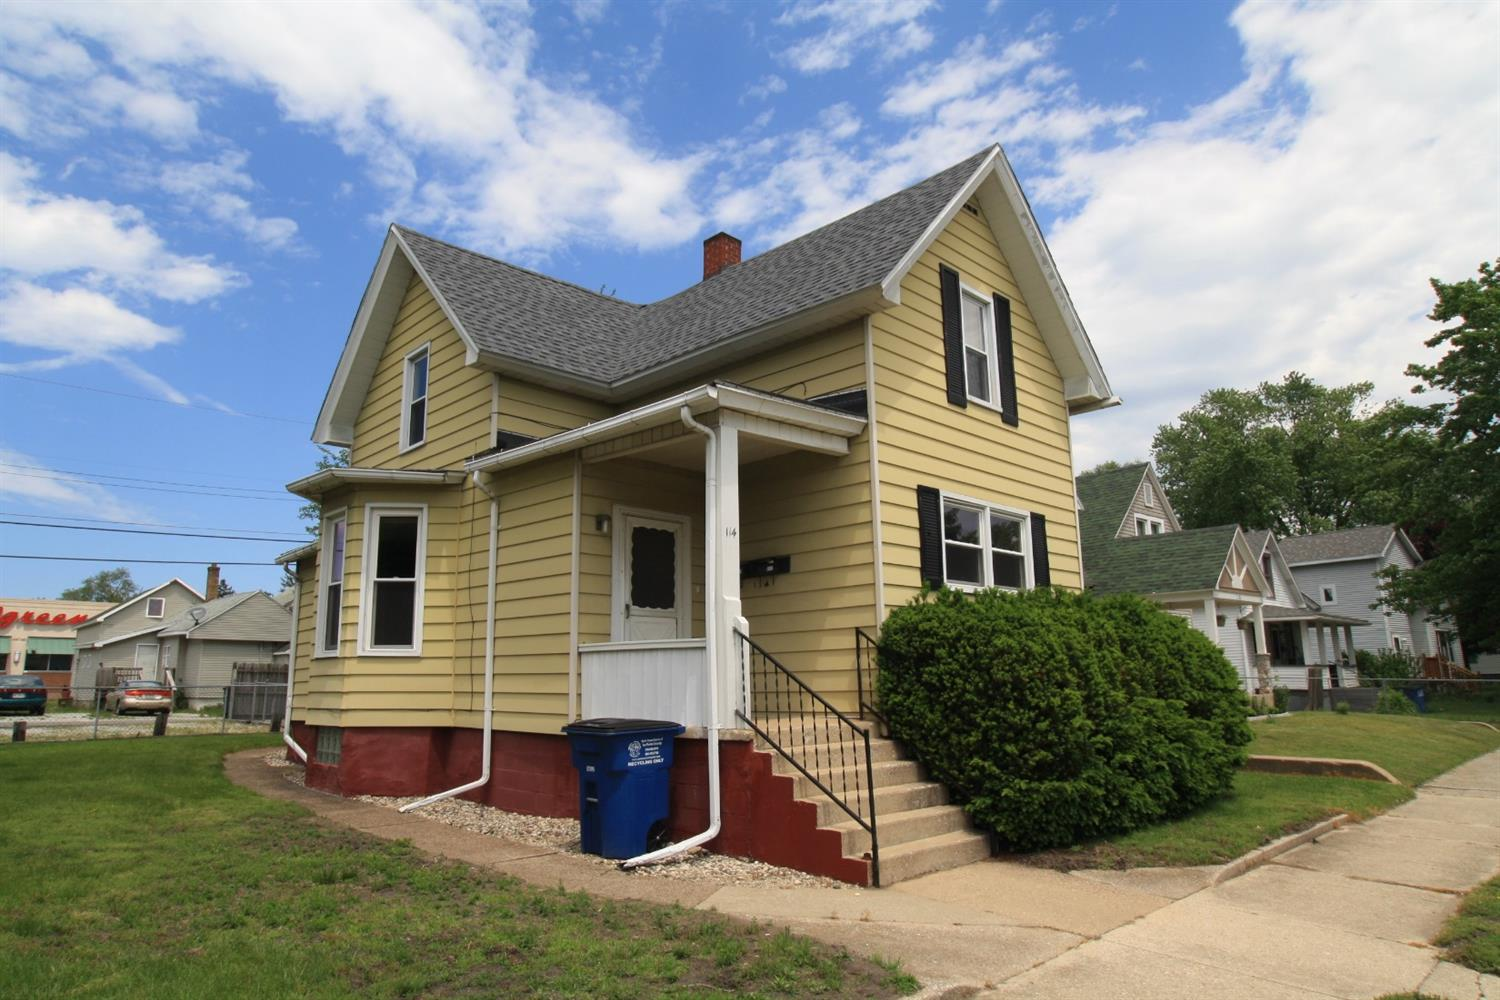 114 E FULTON STREET, MICHIGAN CITY, IN 46360